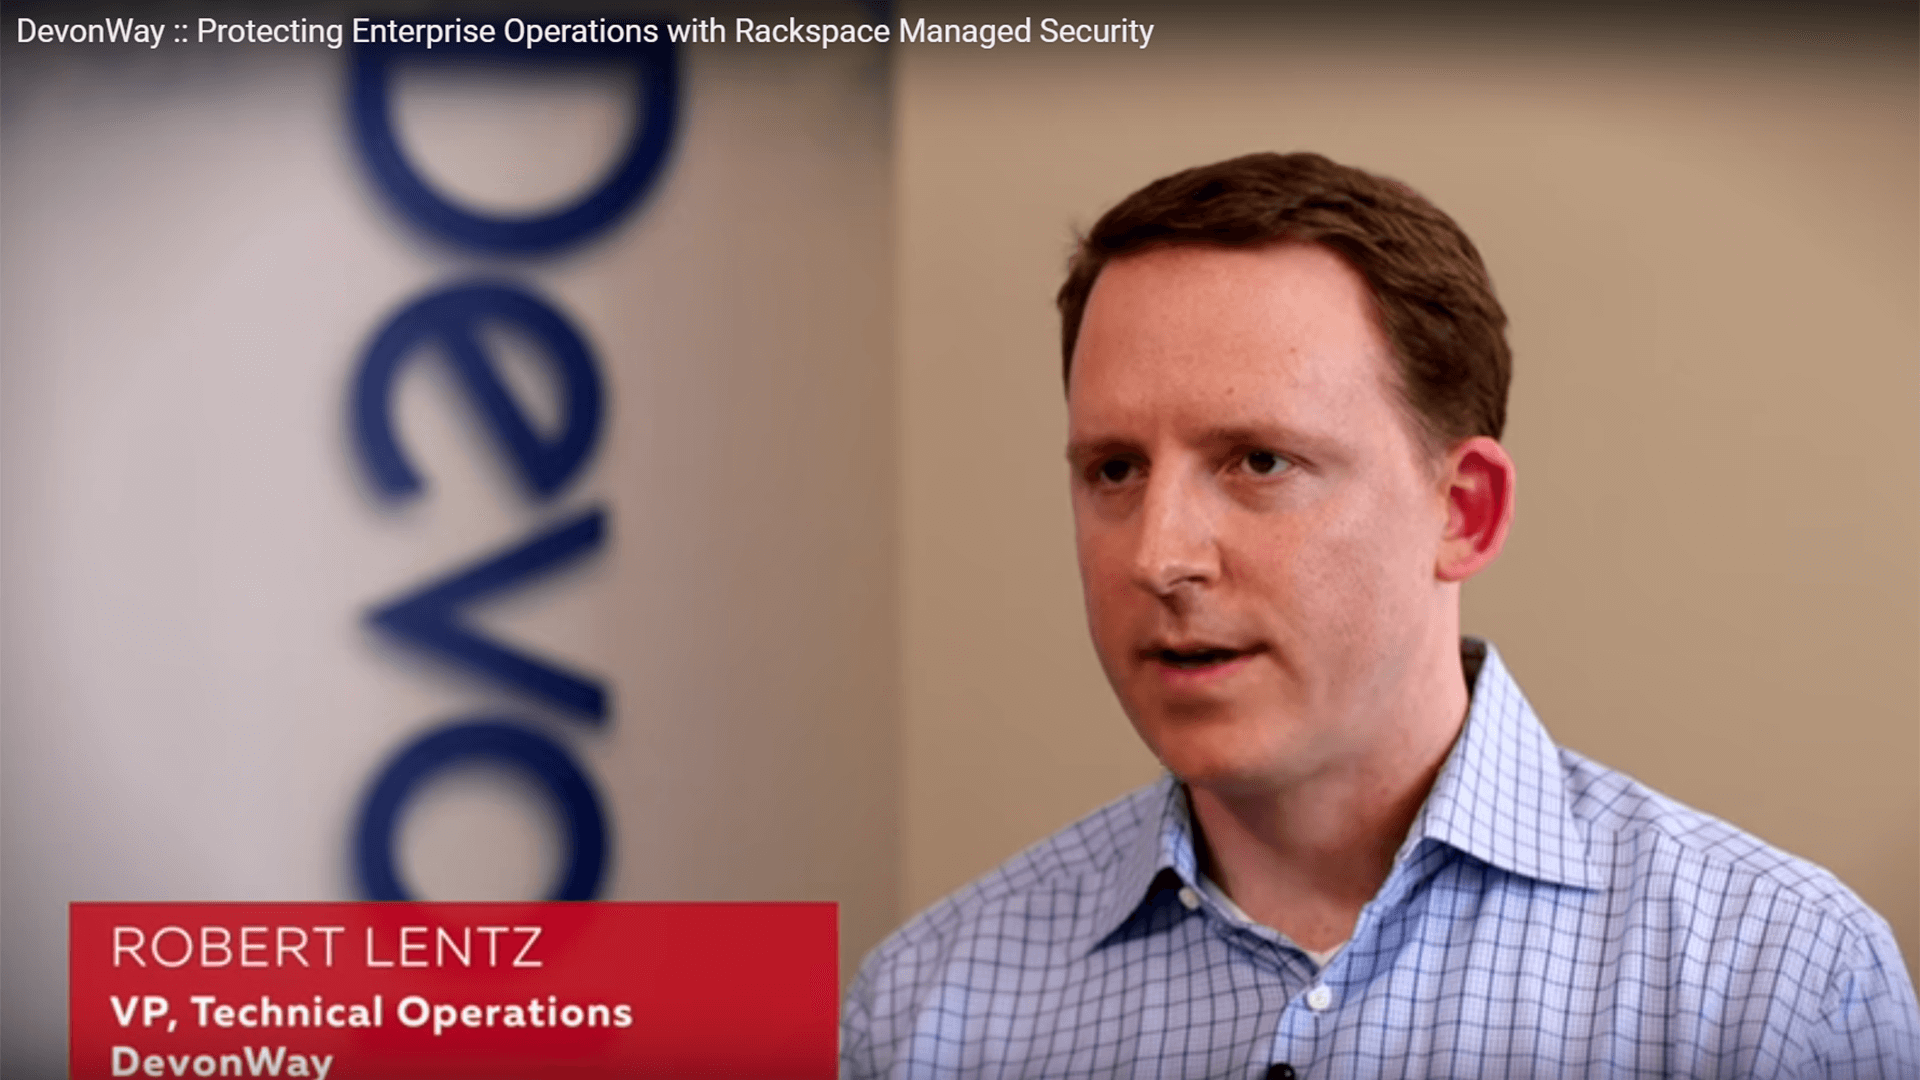 DevonWay Partners with Rackspace to Ensure a Fully Secured, World-Class Hosted Environment